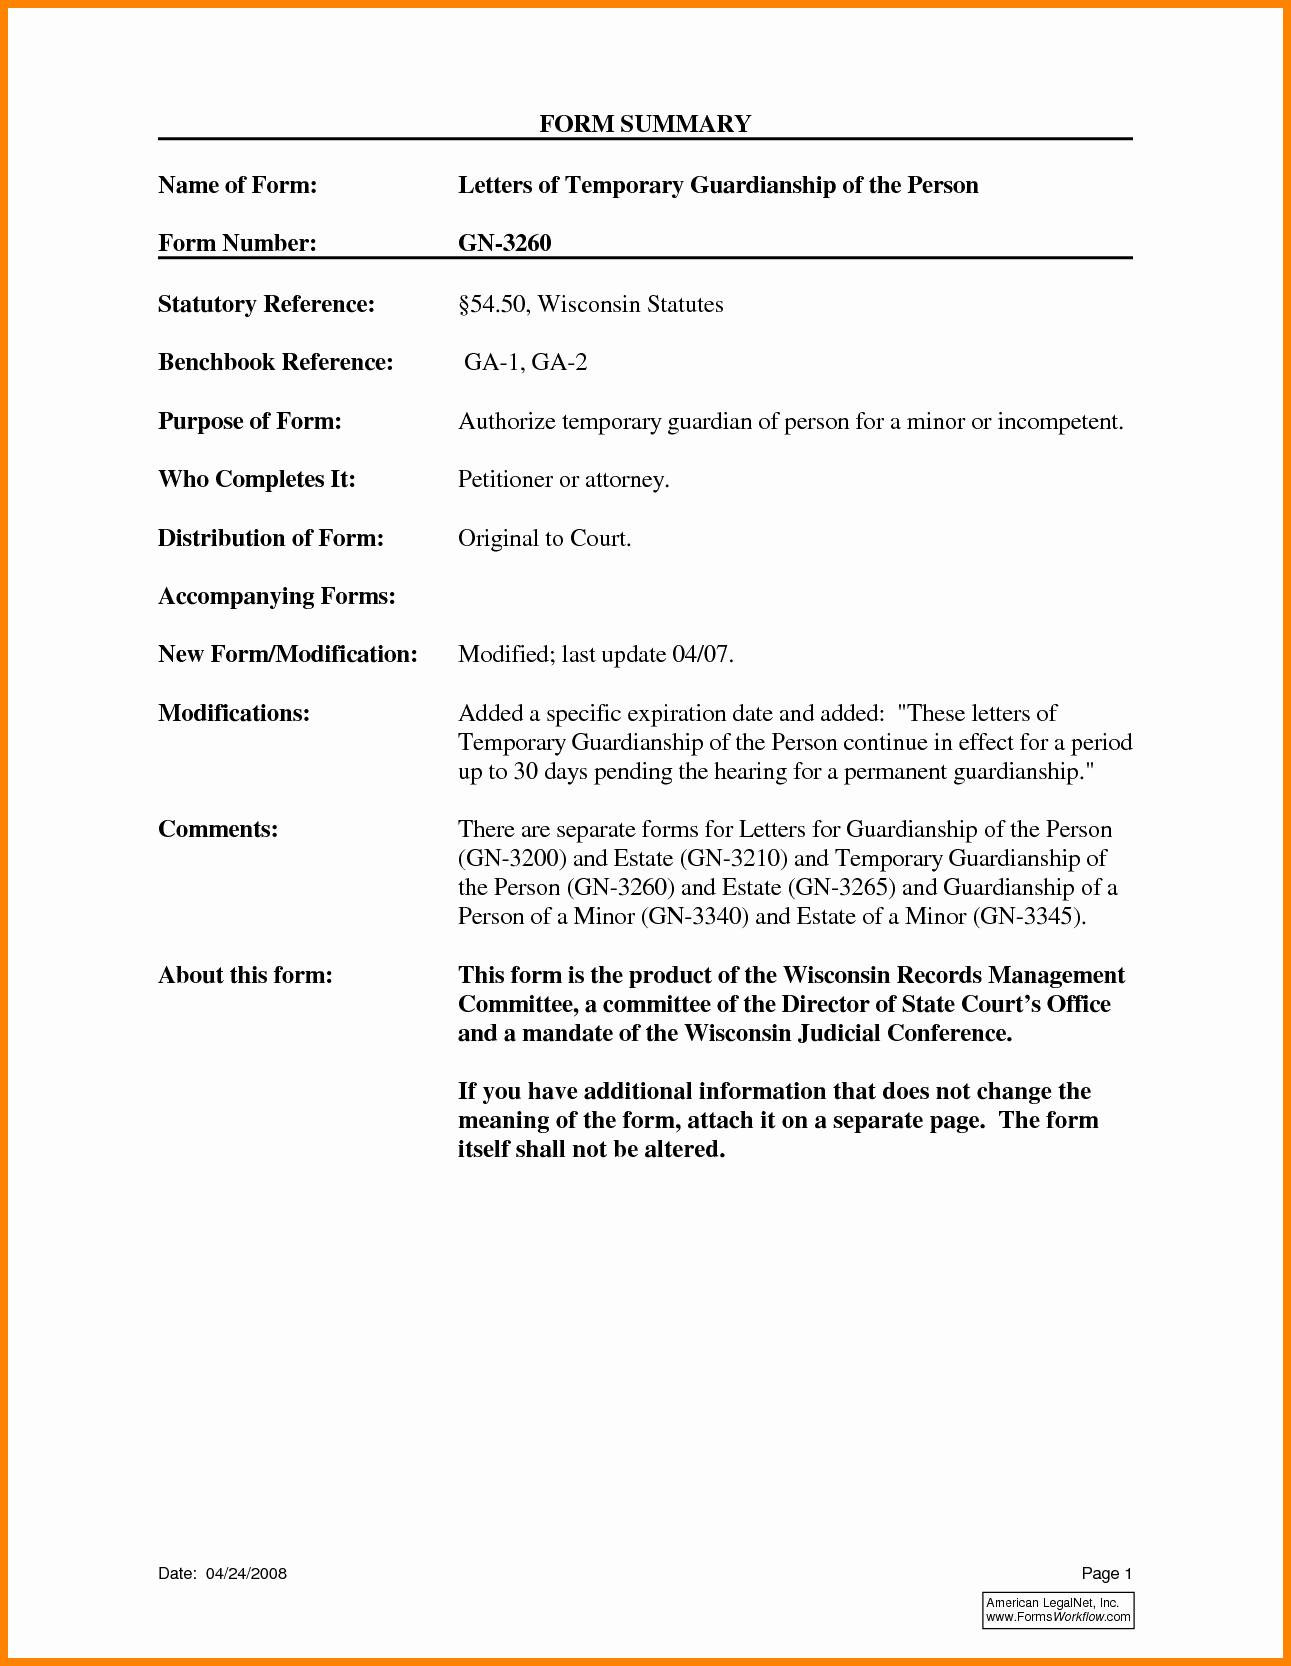 Temporary Guardianship Letter Template - Temporary Guardianship form for Grandparents Best Temporary